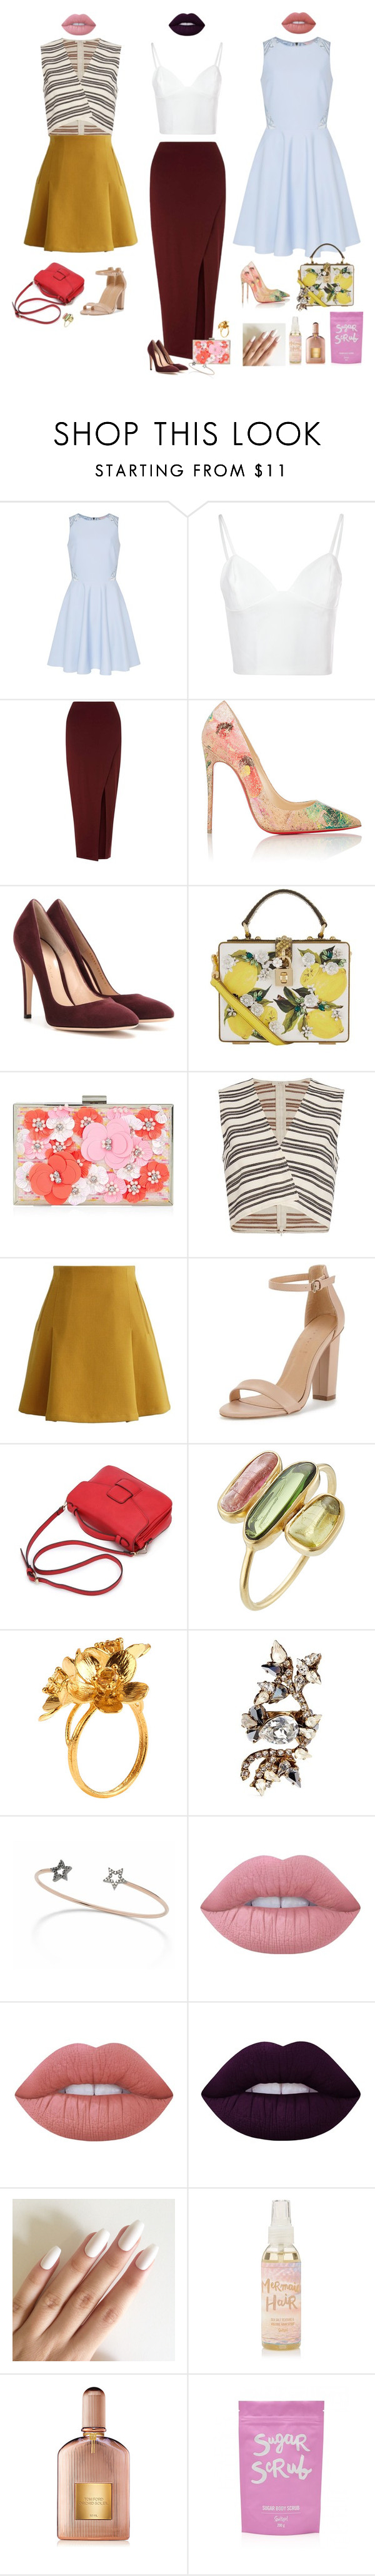 """""""Untitled #2107"""" by audrey-balt on Polyvore featuring Ted Baker, Glamorous, Miss Selfridge, Christian Louboutin, Gianvito Rossi, Dolce&Gabbana, New Look, A.L.C., Chicwish and Pippa Small"""